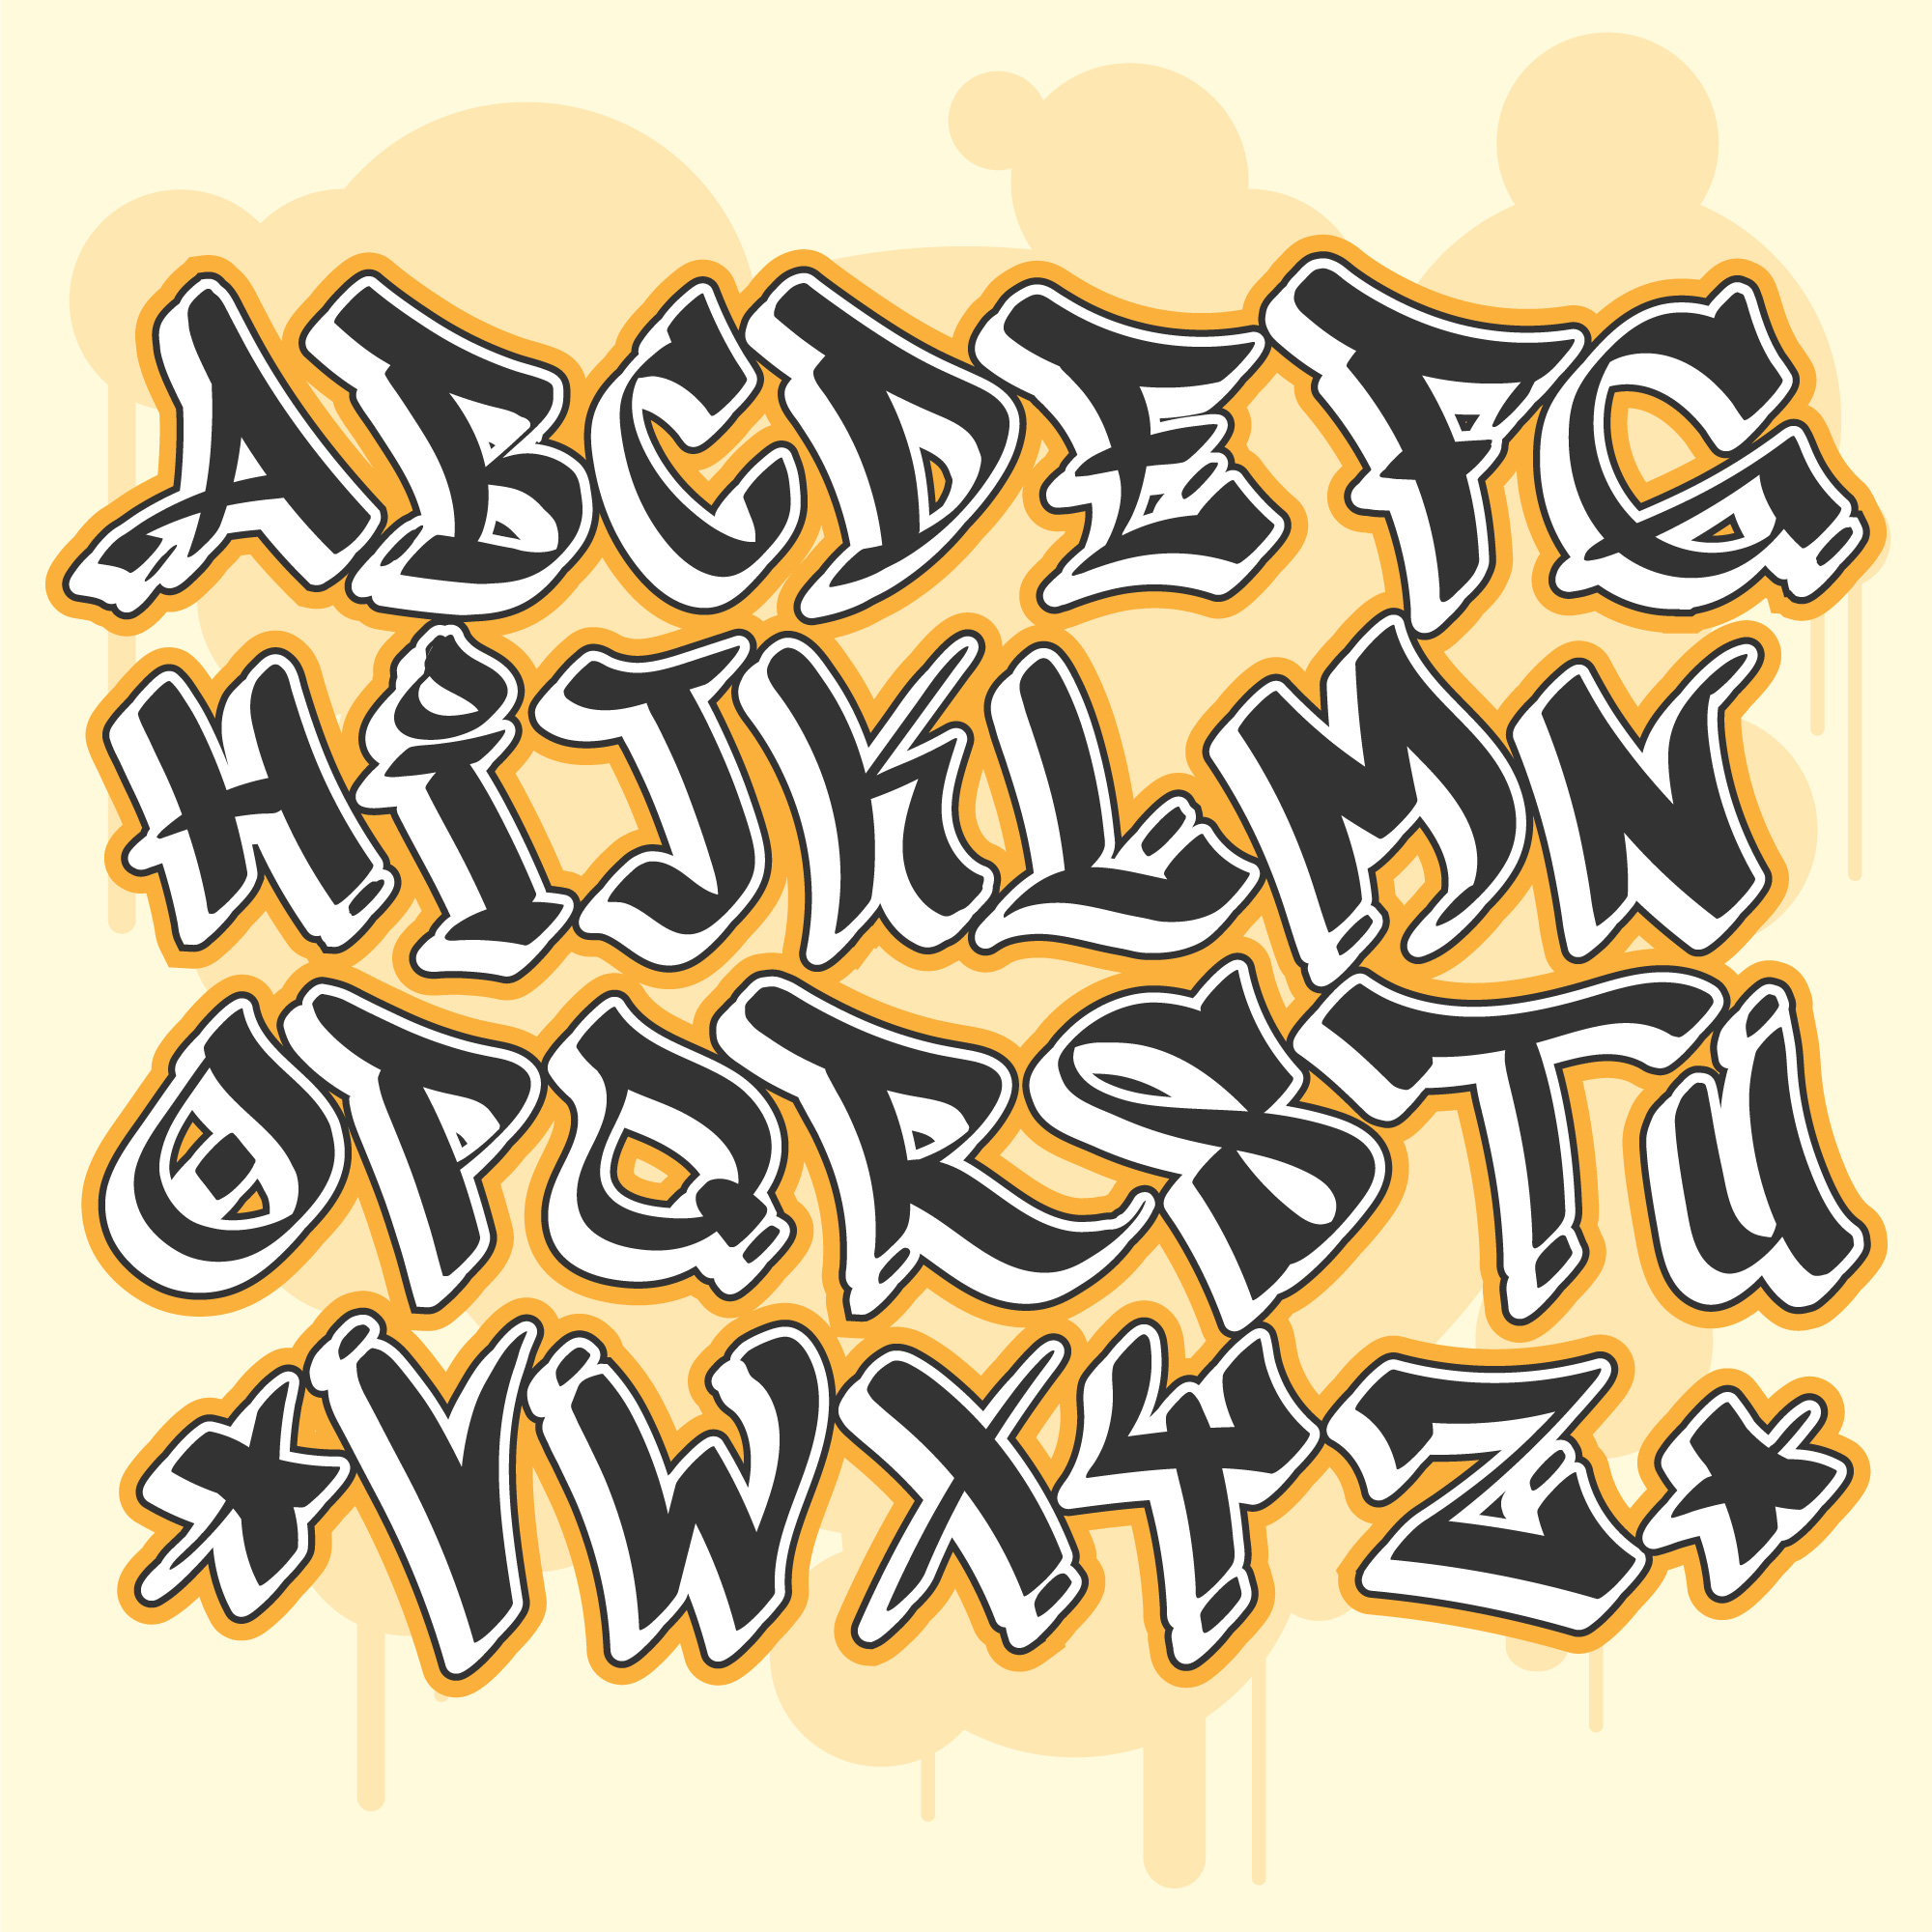 Graffiti Alphabet - Download Free Vector Art, Stock Graphics & Images